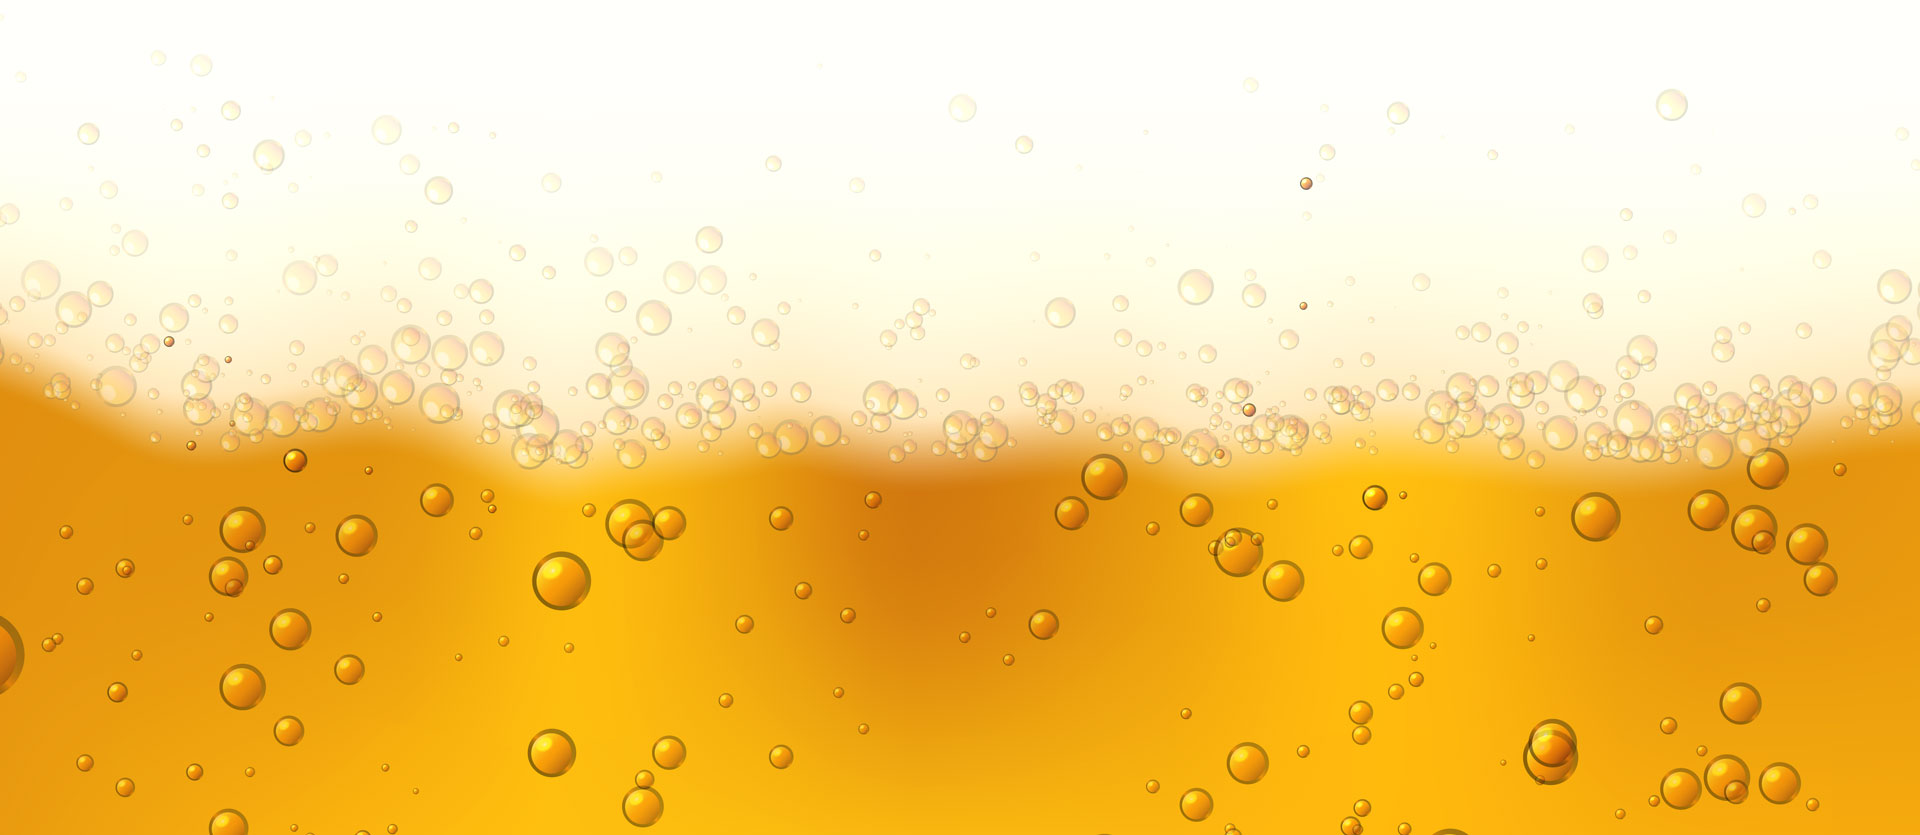 beer background  beer  creative  foam background image for